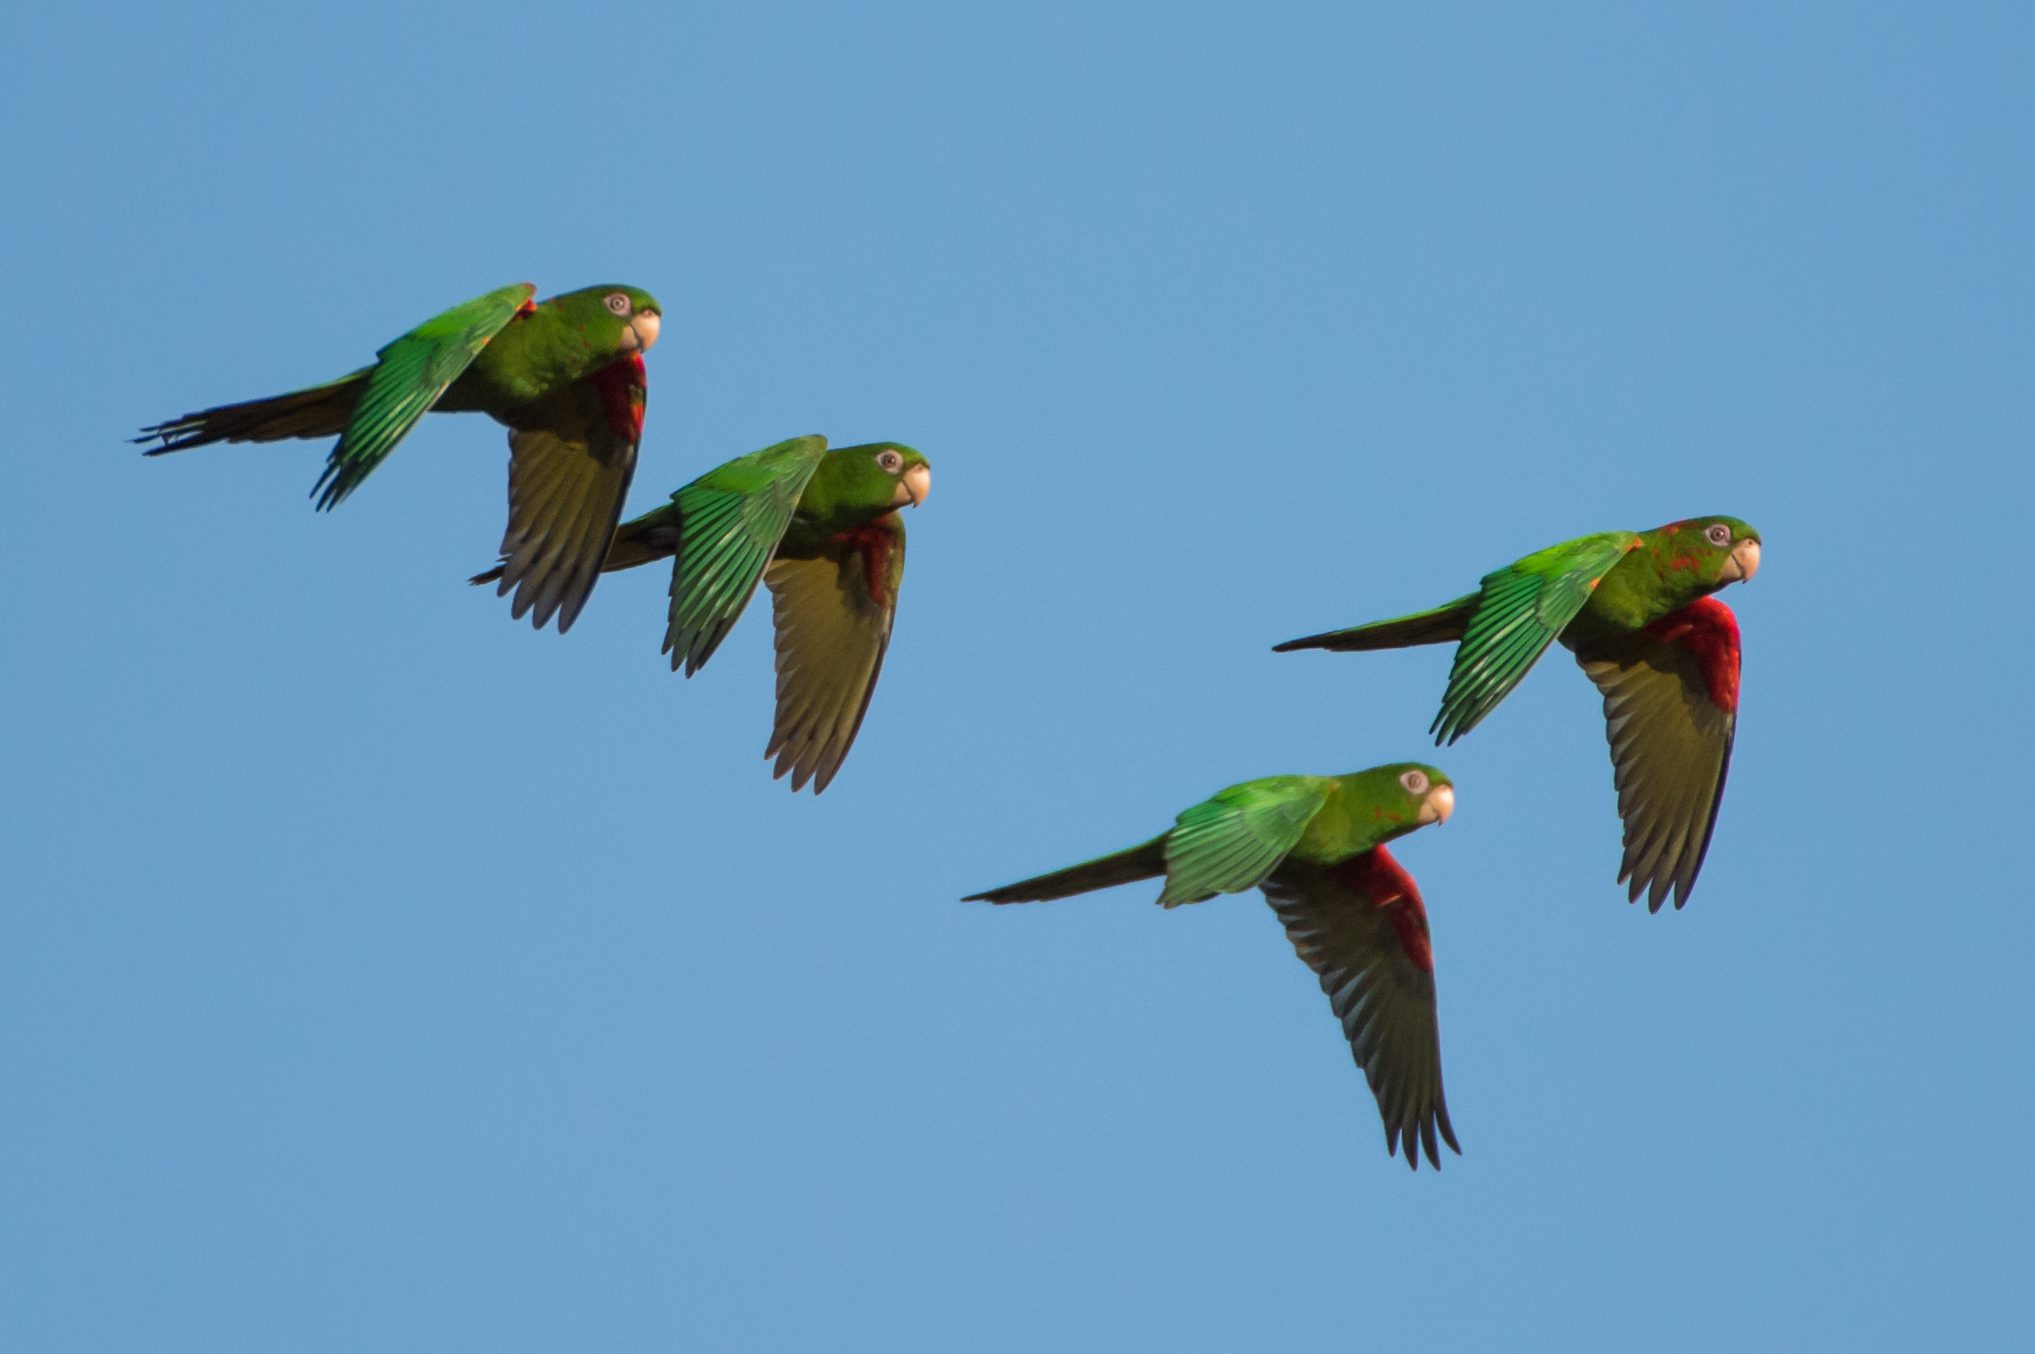 Cuban Parakeets are a rare sight in Cuba, the only place they live in the world.